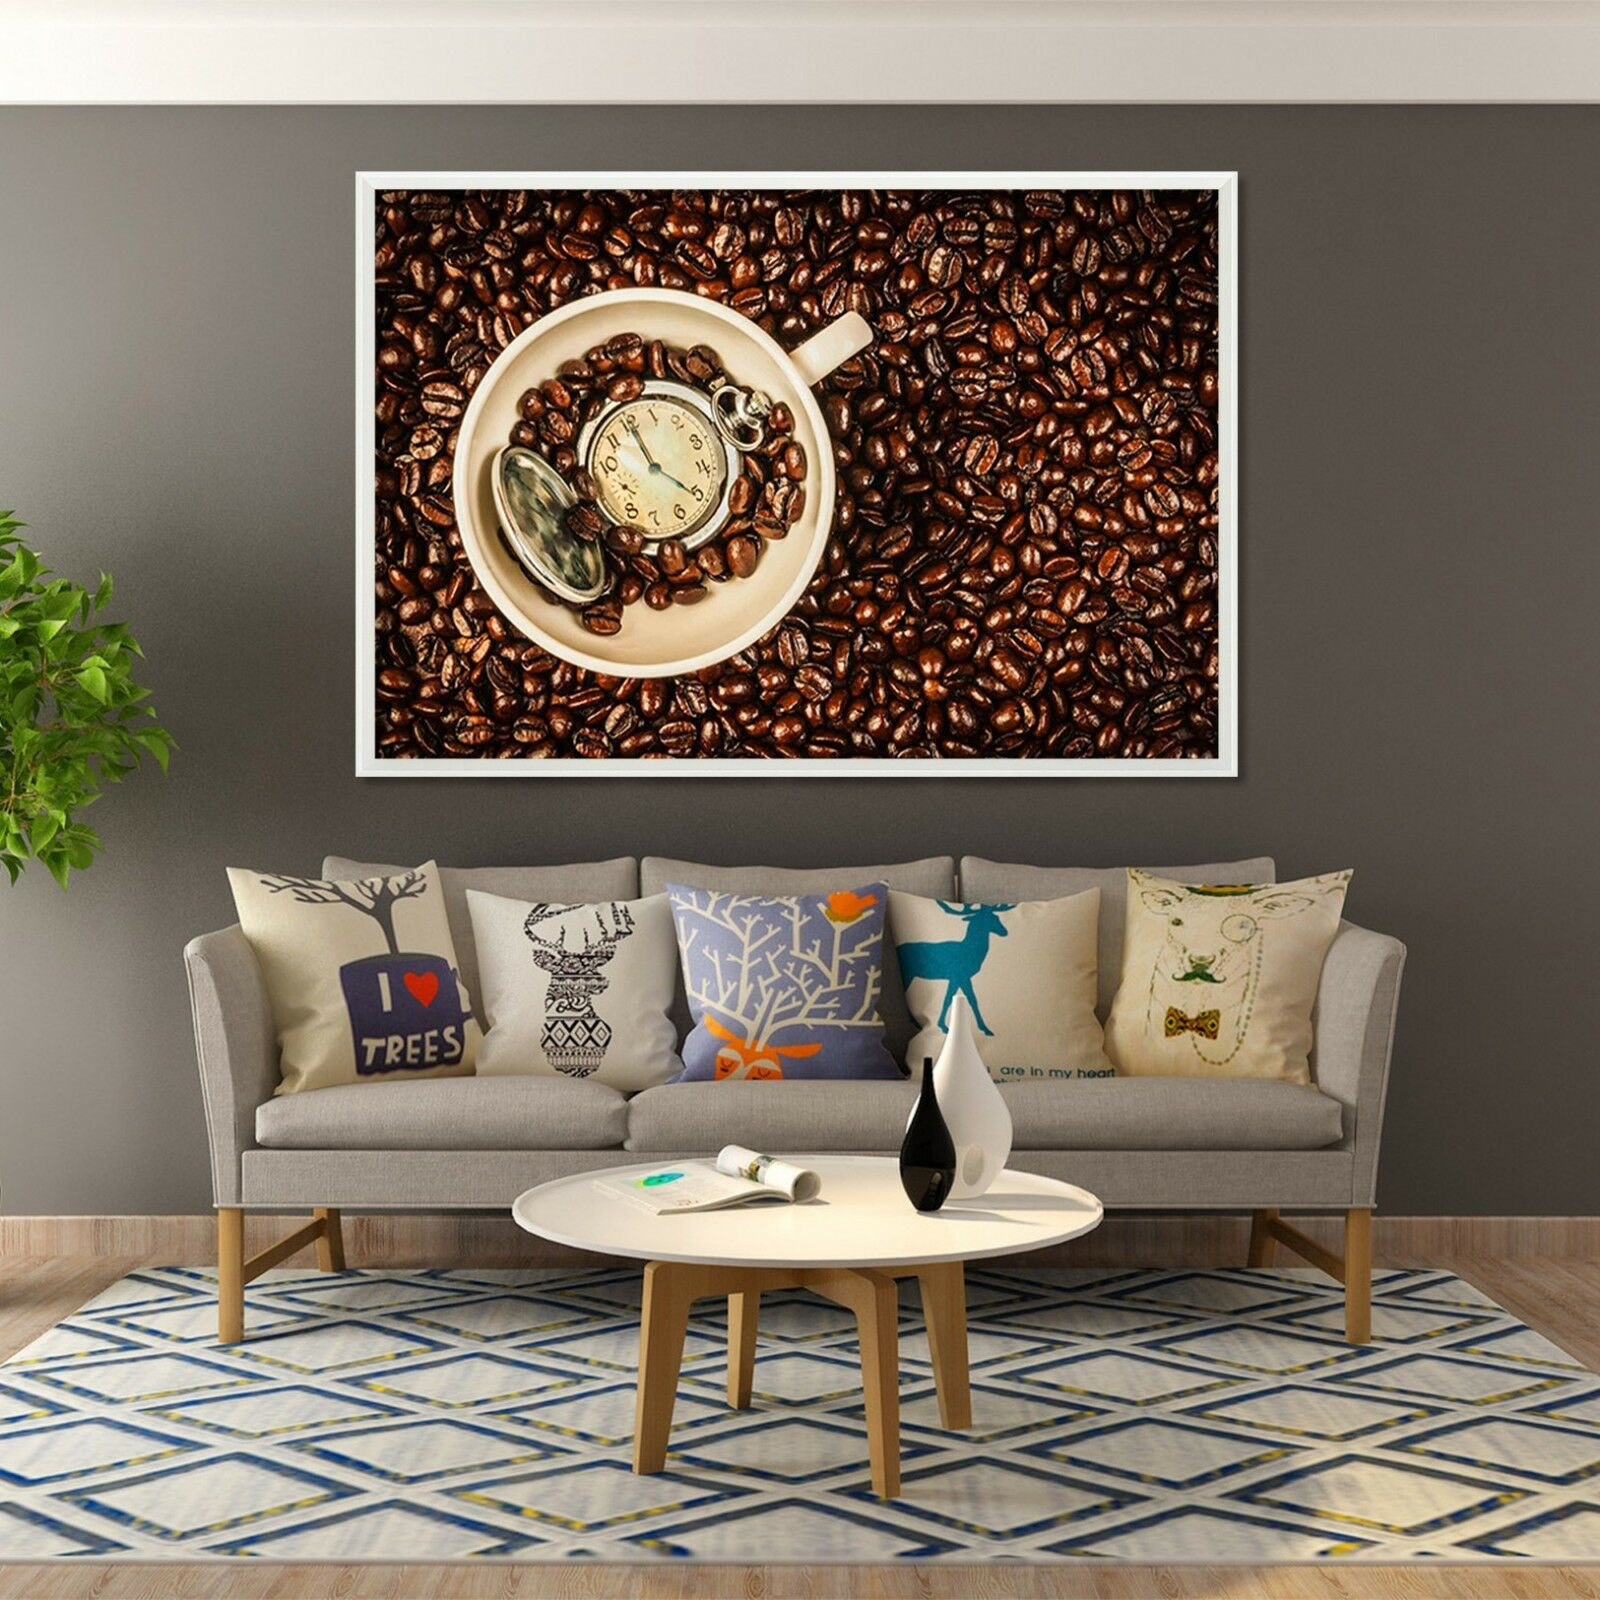 3D Cup Coffee Beans 1 Framed Poster Home Decor Print Painting Art AJ WALLPAPER